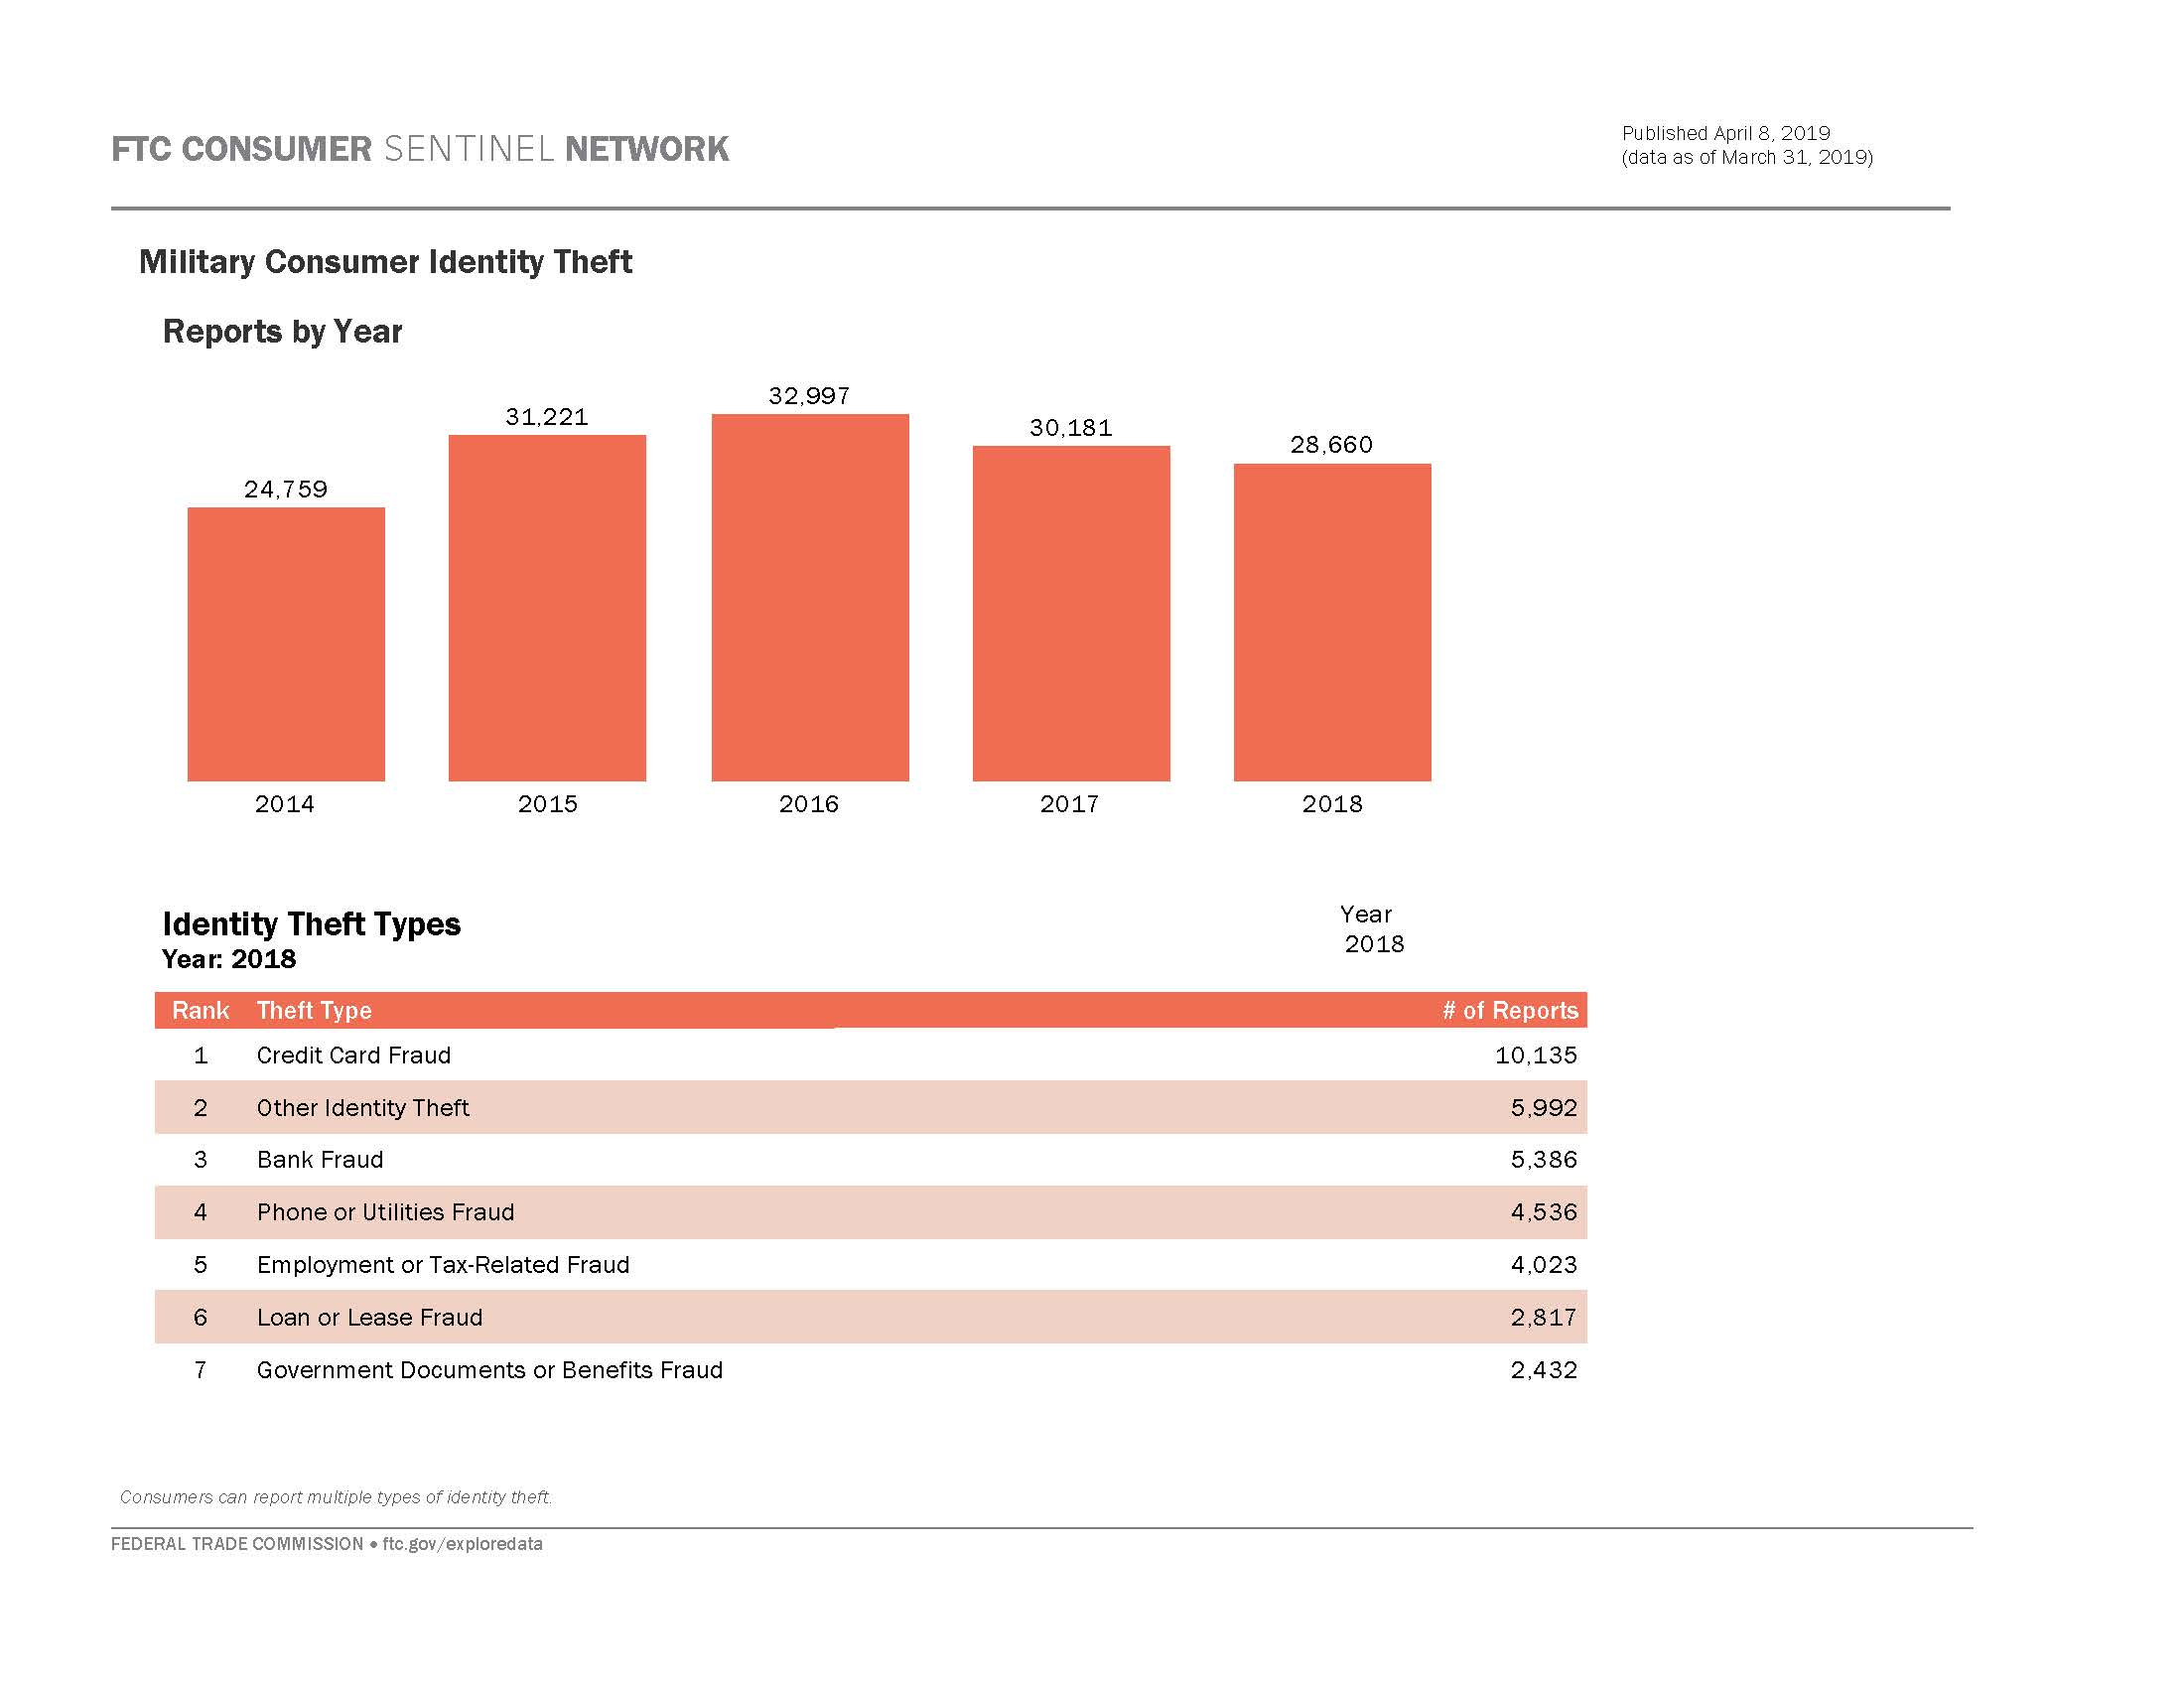 Link to interactive dashboard showing number of military consumer id theft reports over time and by theft type.